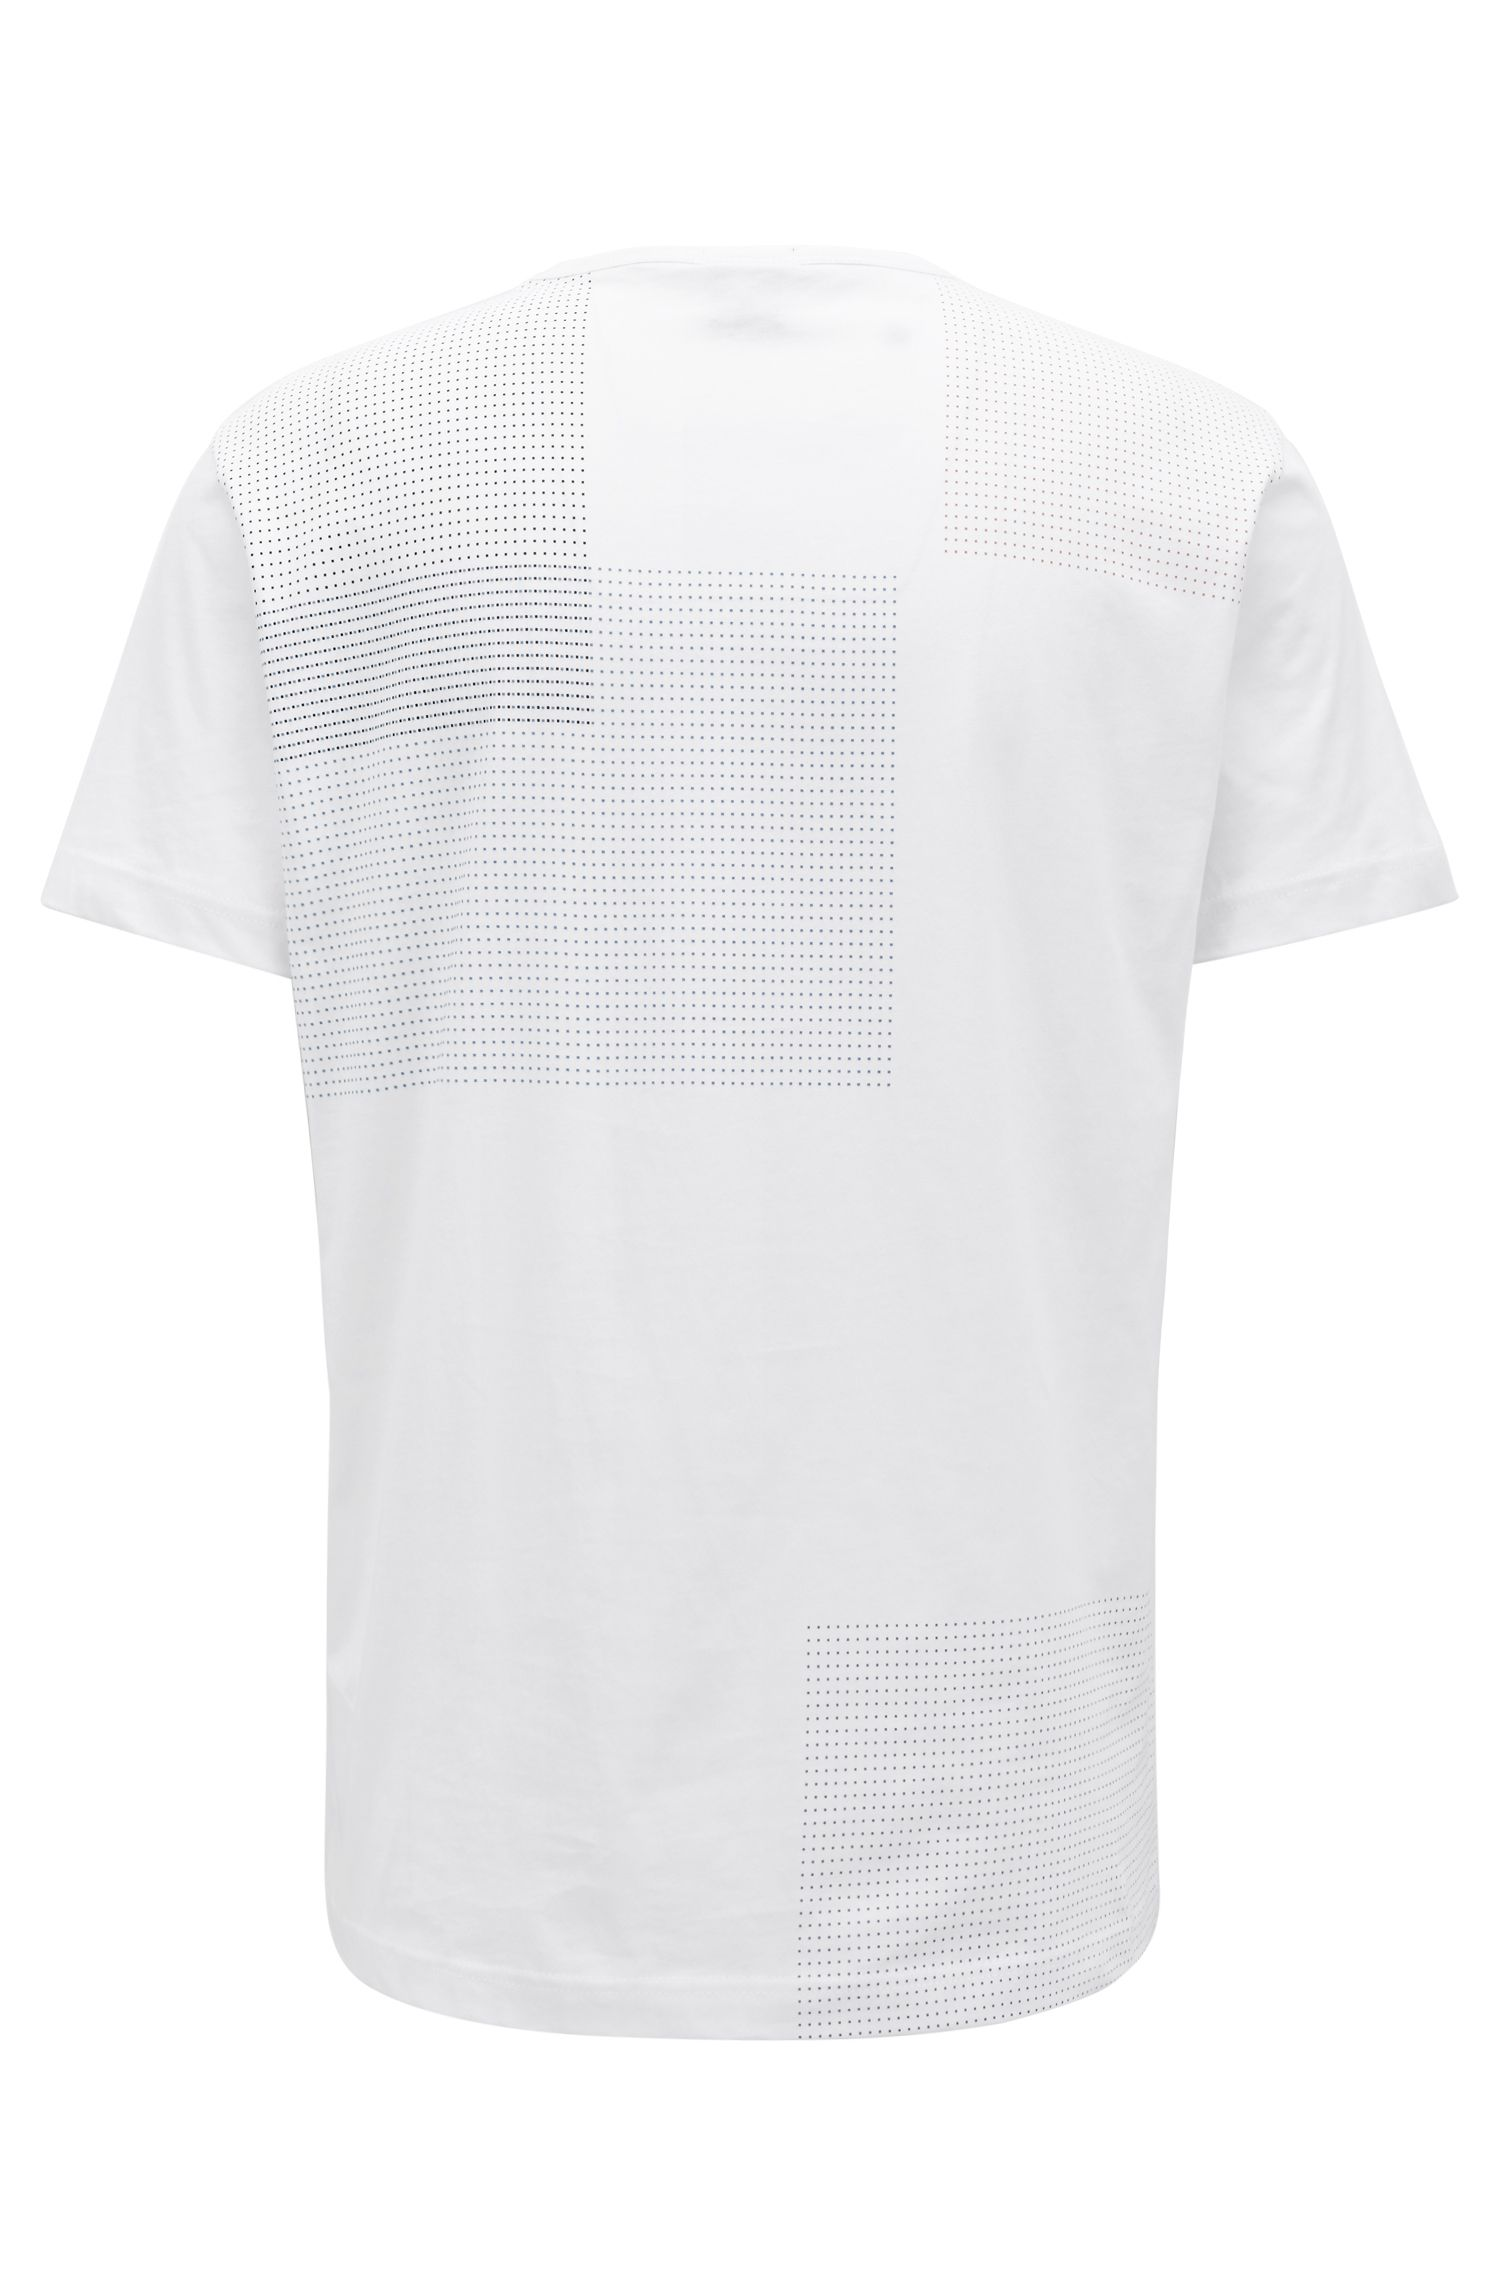 Logo T-shirt in single-jersey cotton with printed artwork